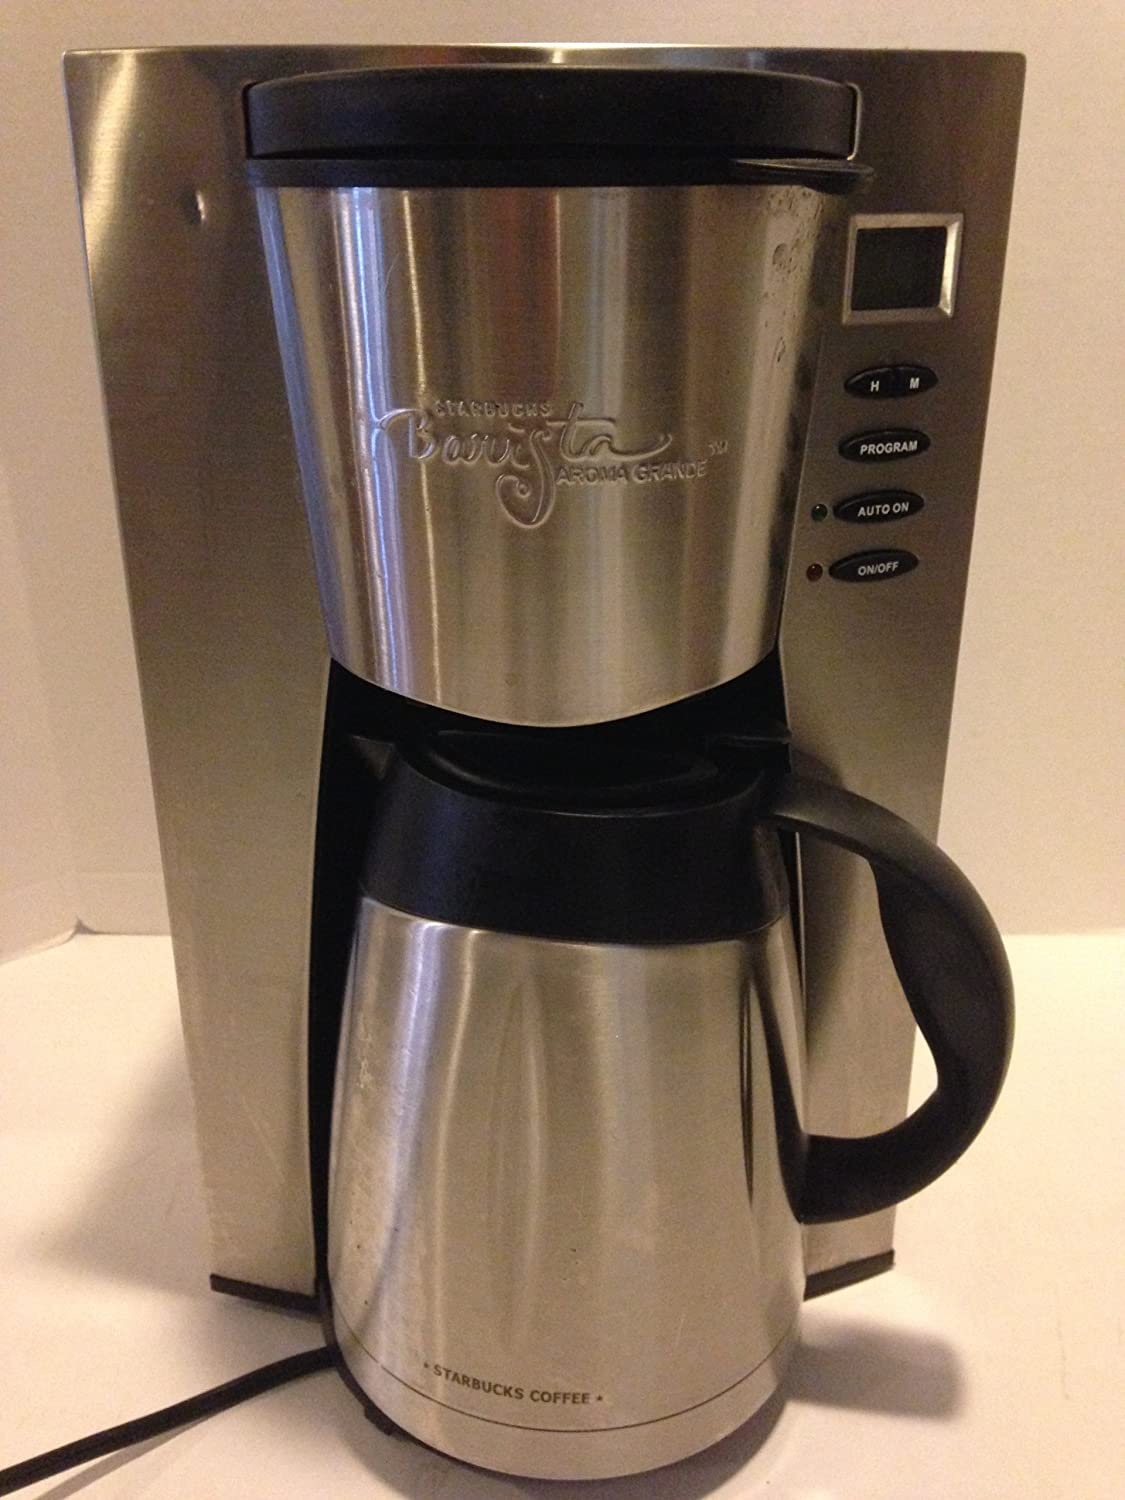 Starbucks Barista Aroma Grande 12 Cup Programable Stainless Steel Coffee Maker